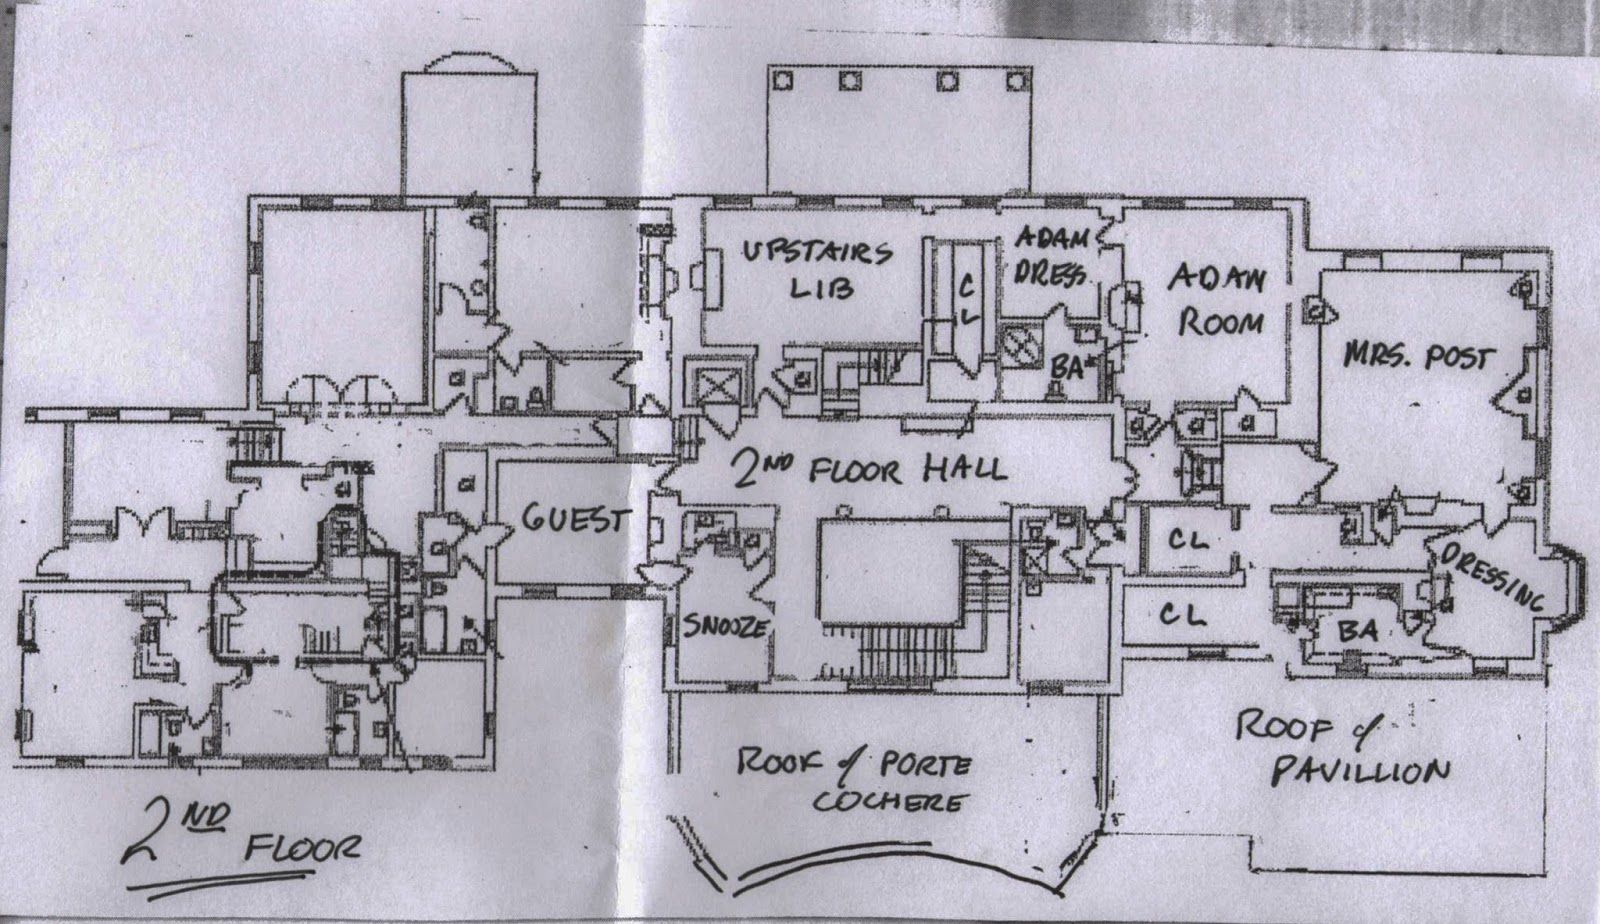 Hillwood Second Floor Plan Washington Dc Floor Plans How To Plan House Floor Plans